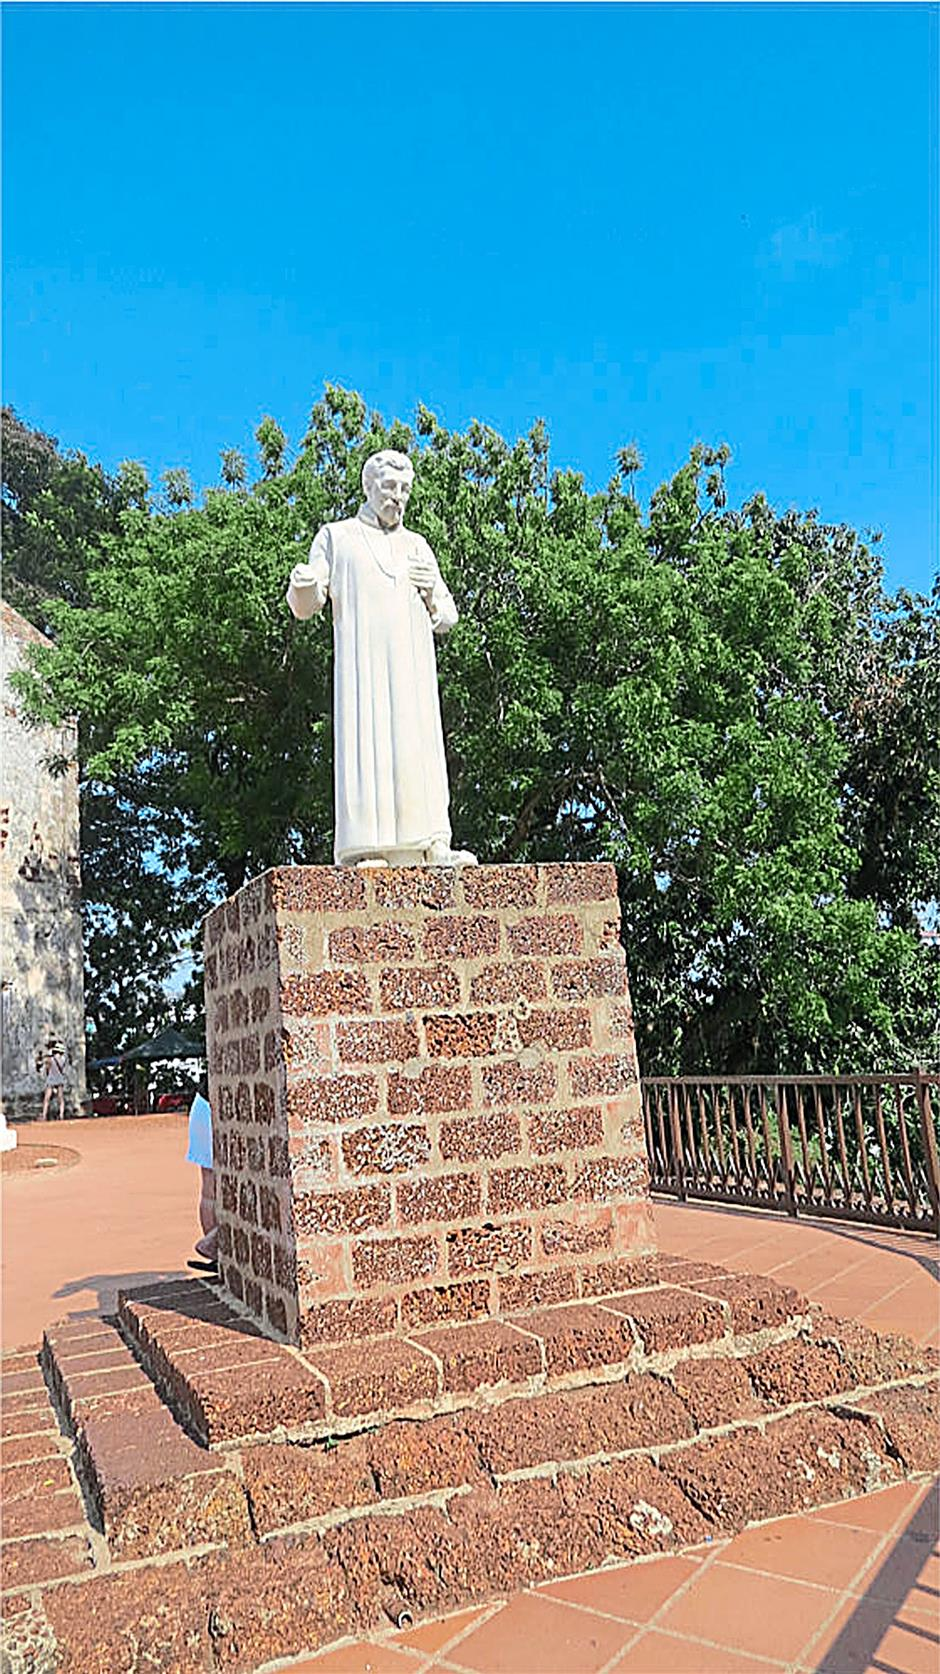 The marble statue of St. Francis Xavier¿s erected in 1952, has a missing right hand